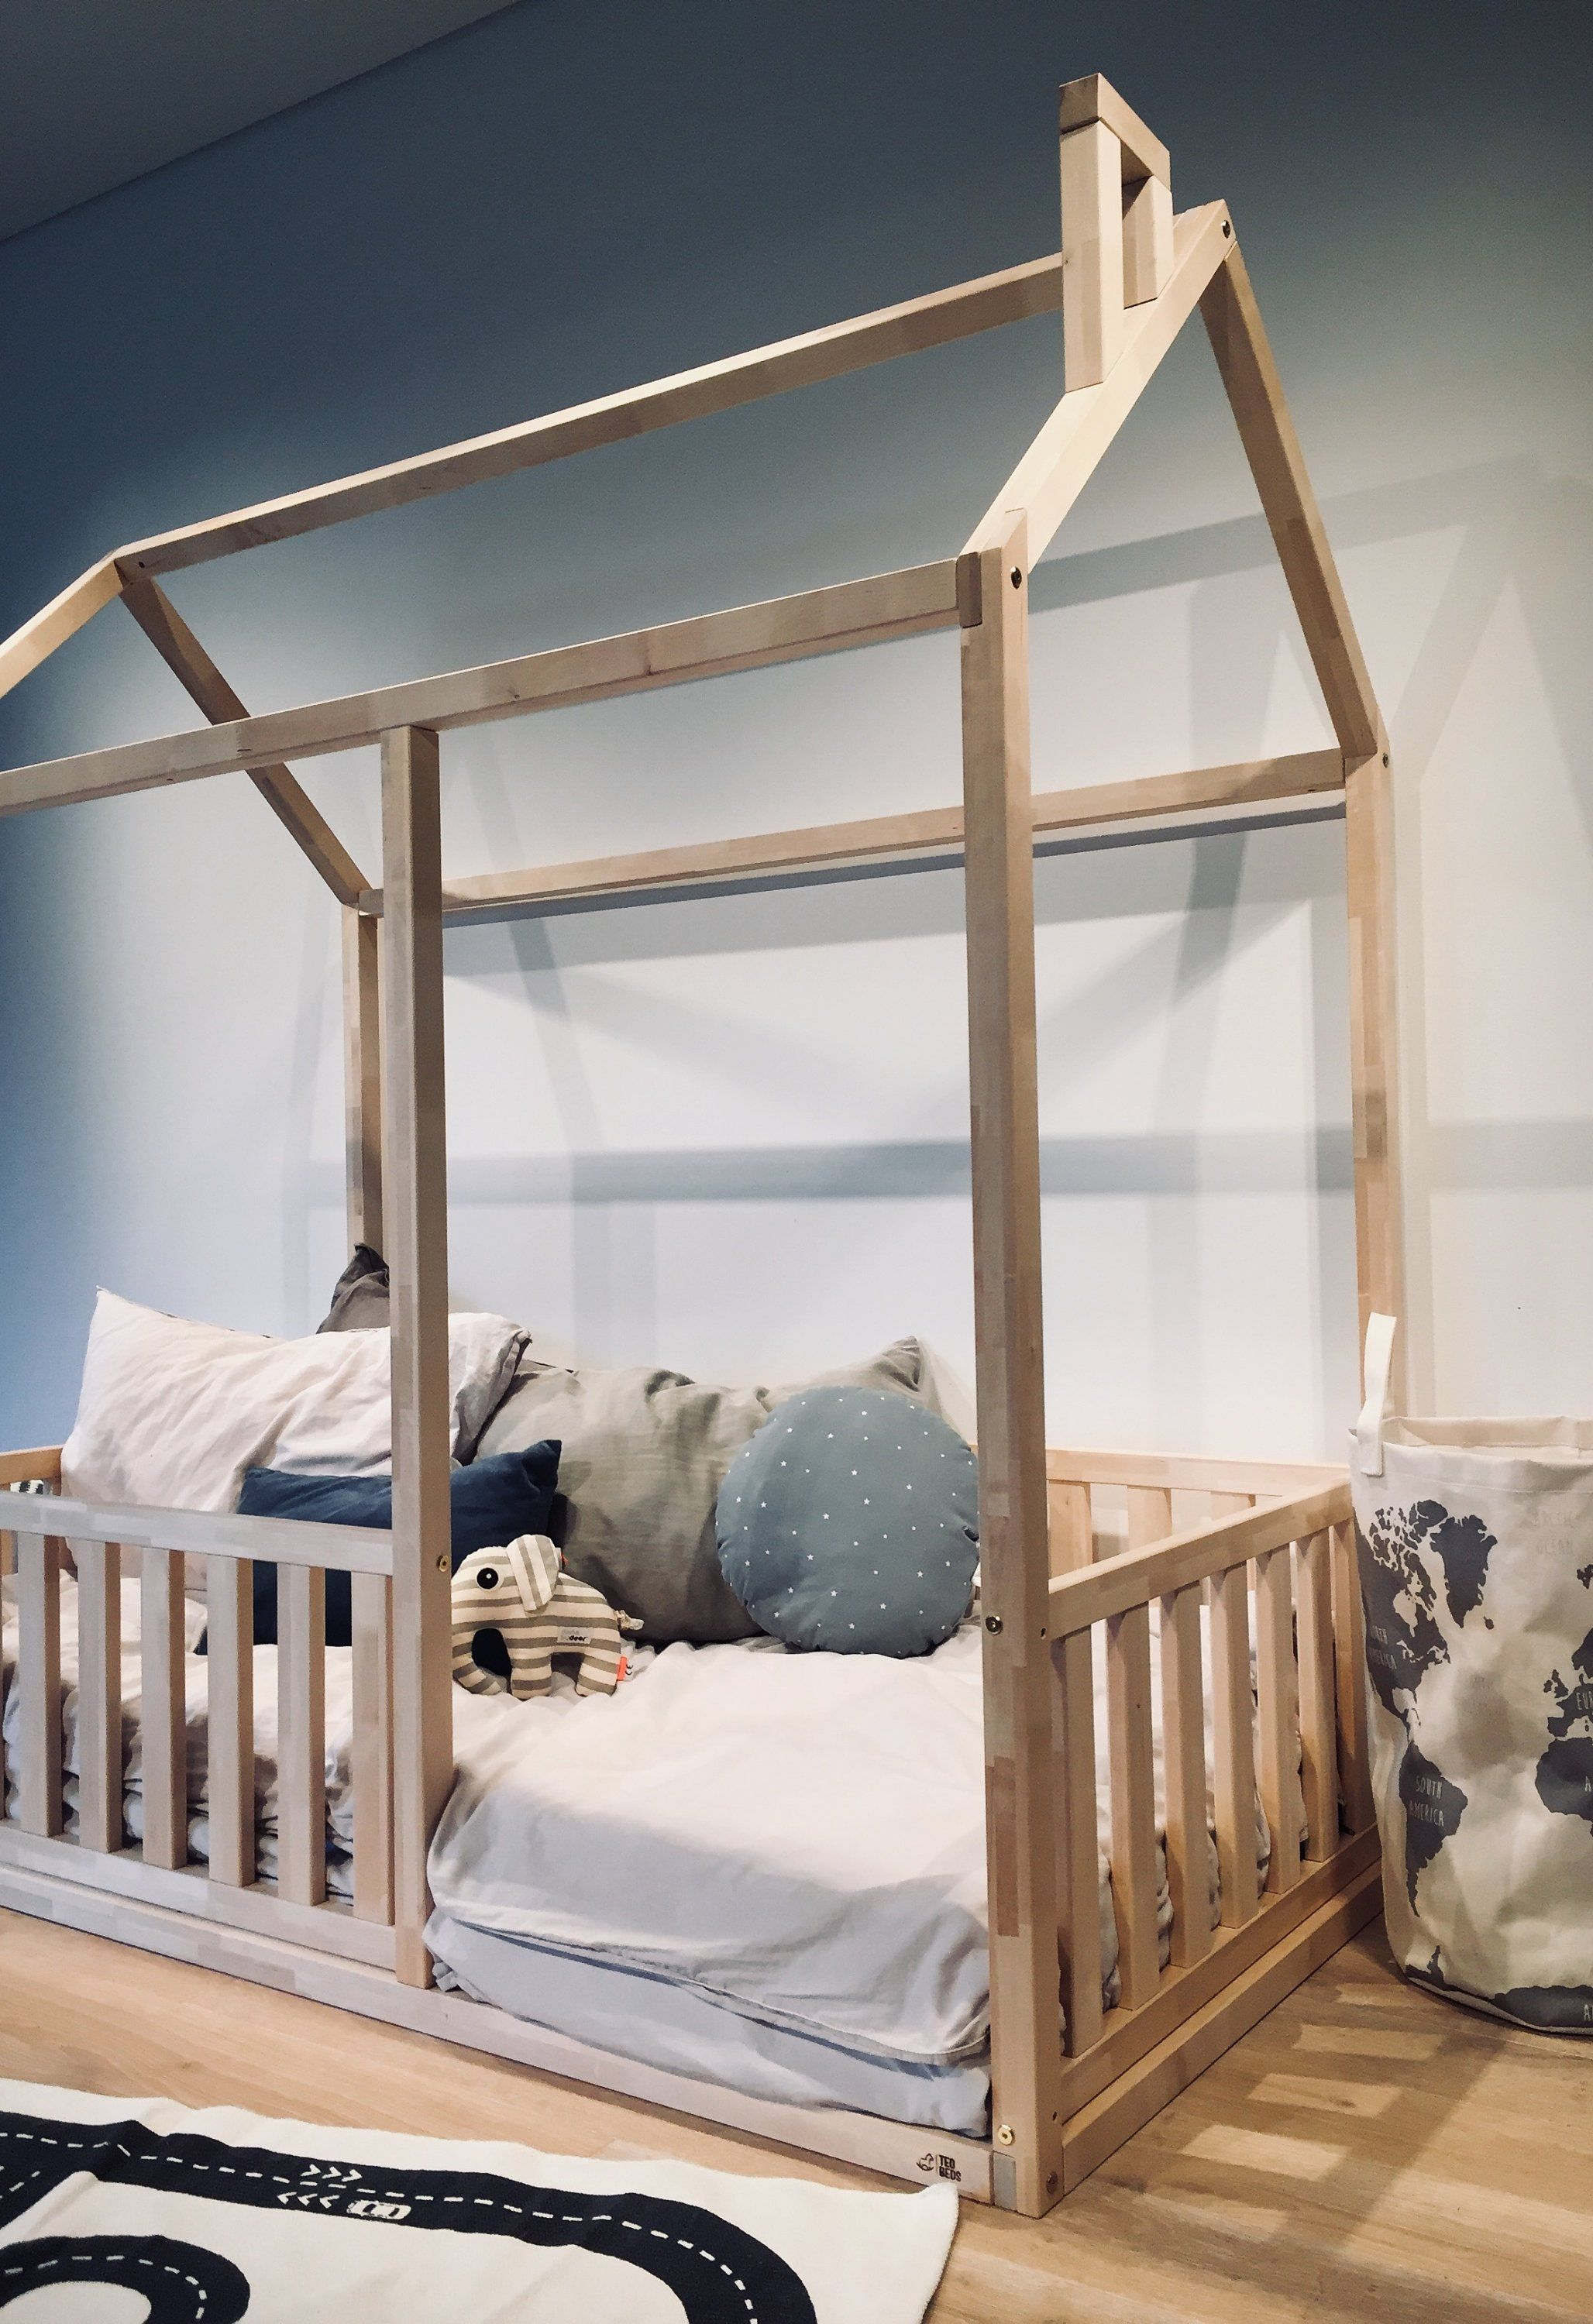 Tipi Bett 120x200 Make Your Toddler S Transition From Crib To Toddler Bed Simple And